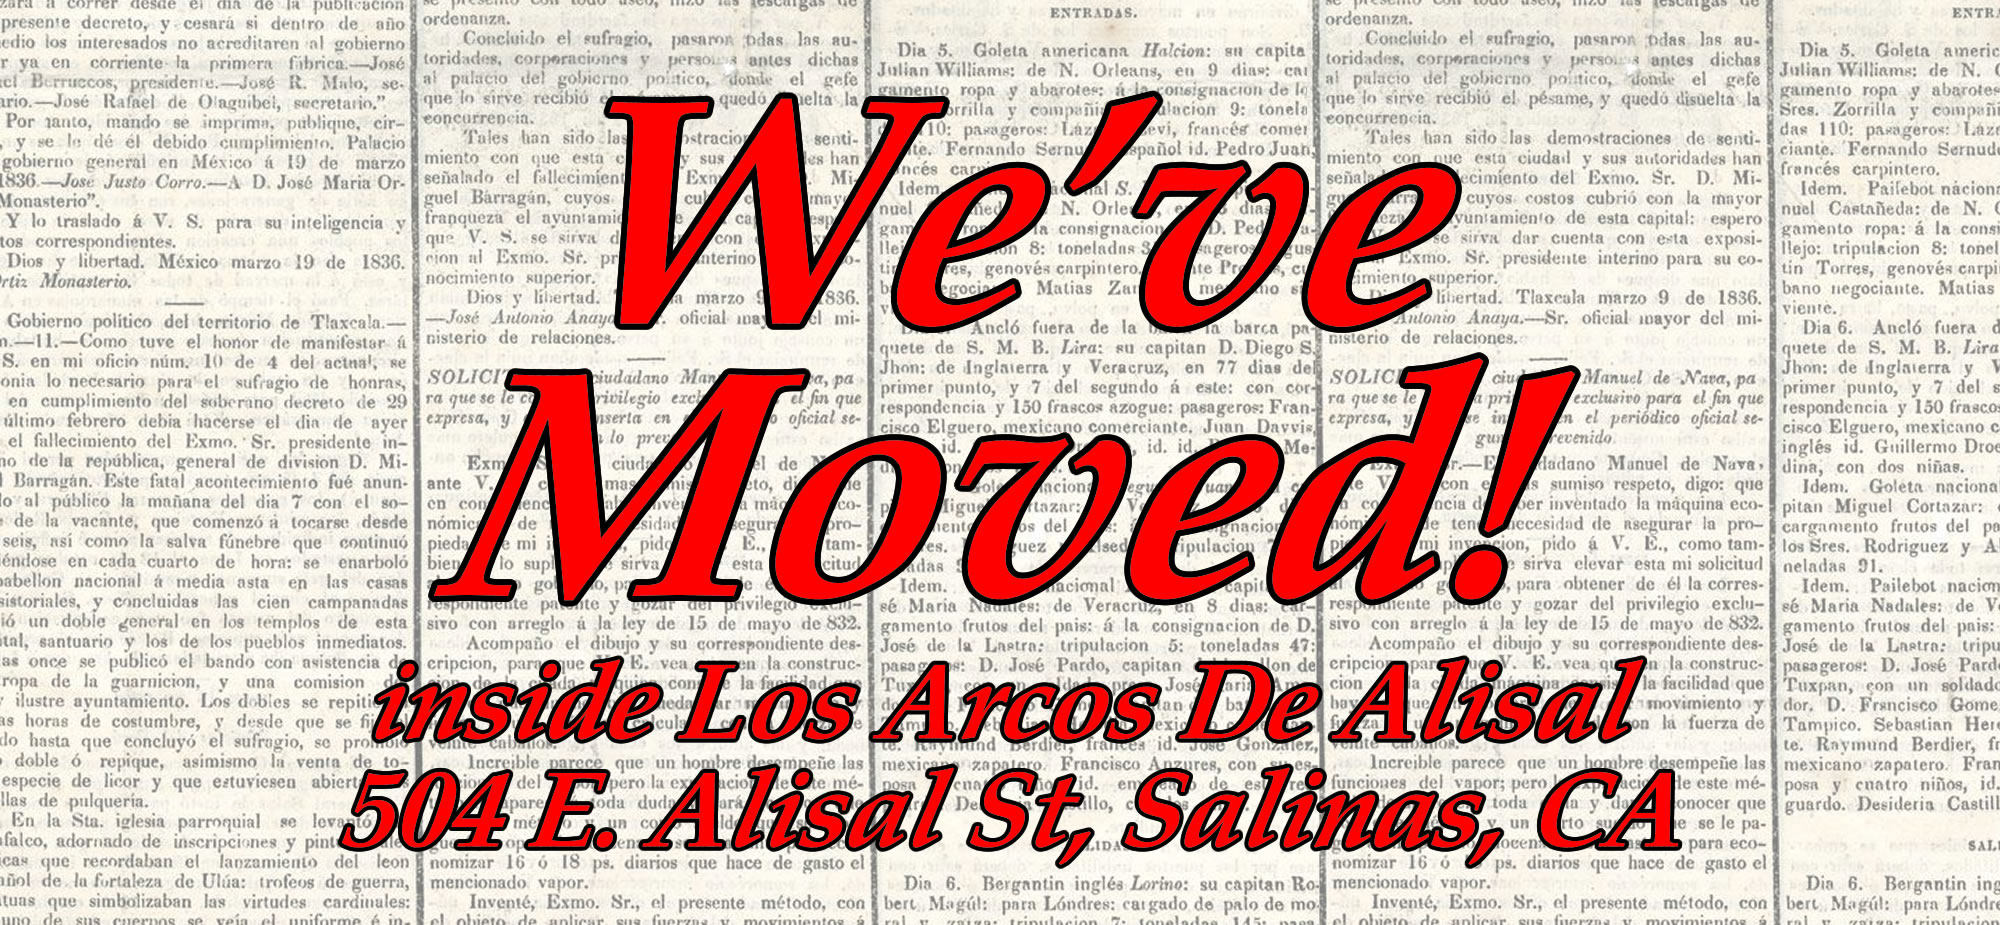 We've Moved! inside Los Arcos De Alisal, 504 E. Alisal St, Salinas, California